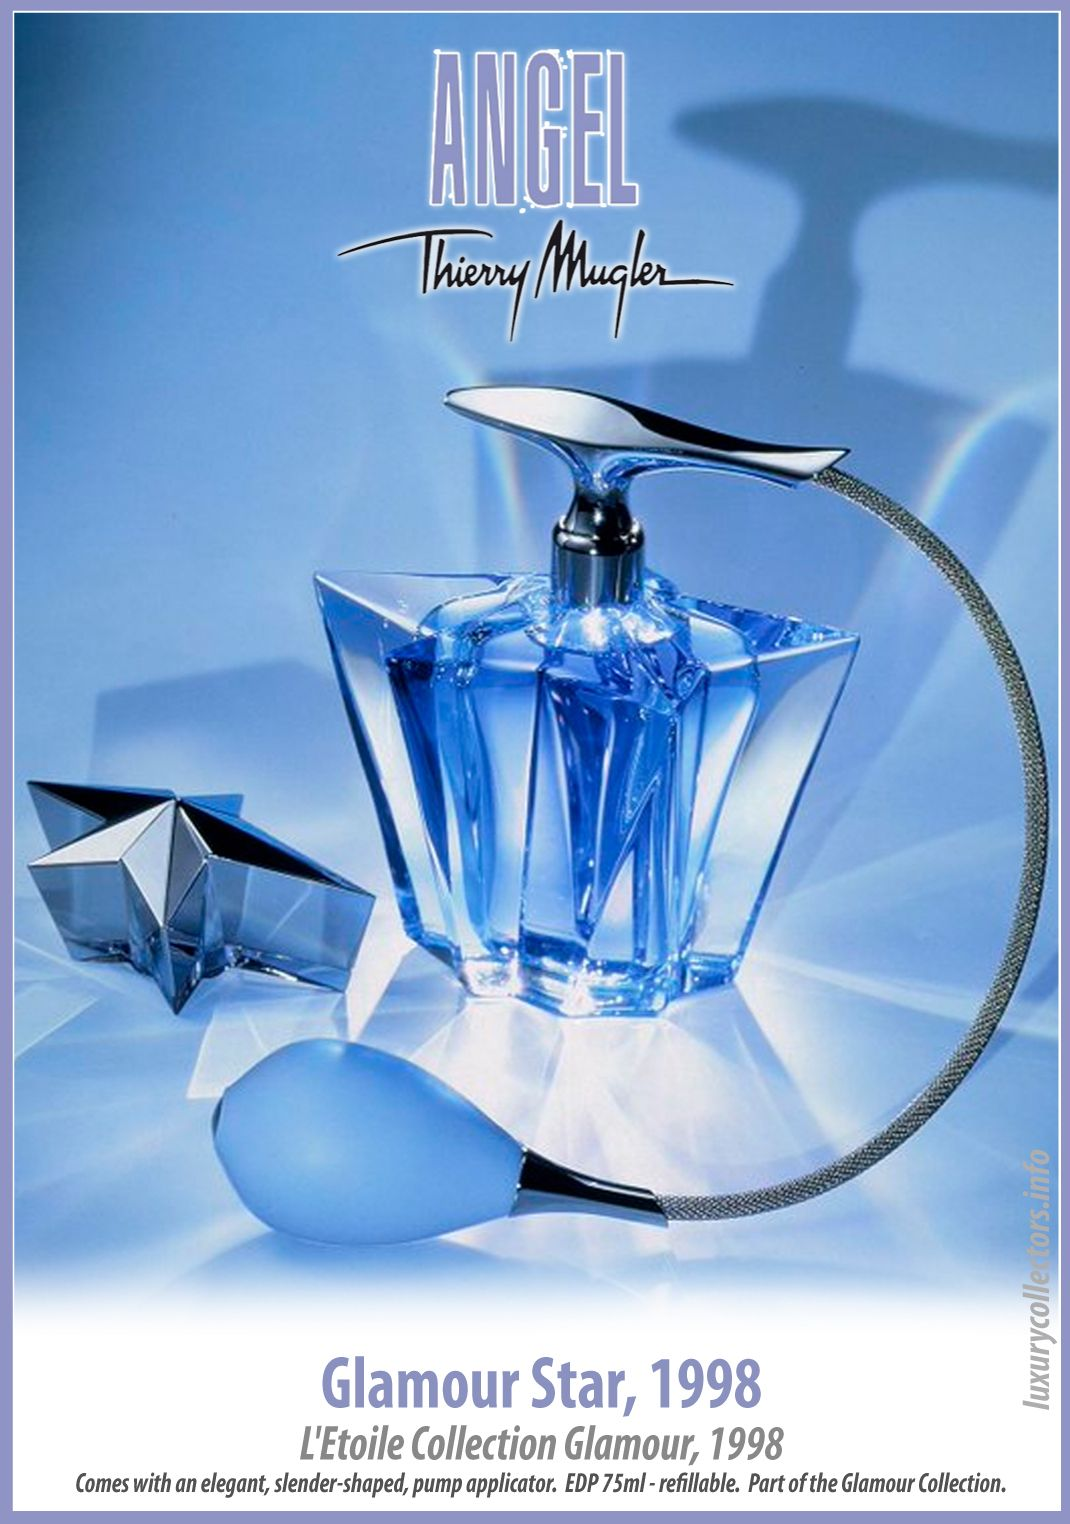 0f8a33b7d Thierry Mugler Angel Perfume Collector s Limited Edition Bottle 1998  Glamour Star